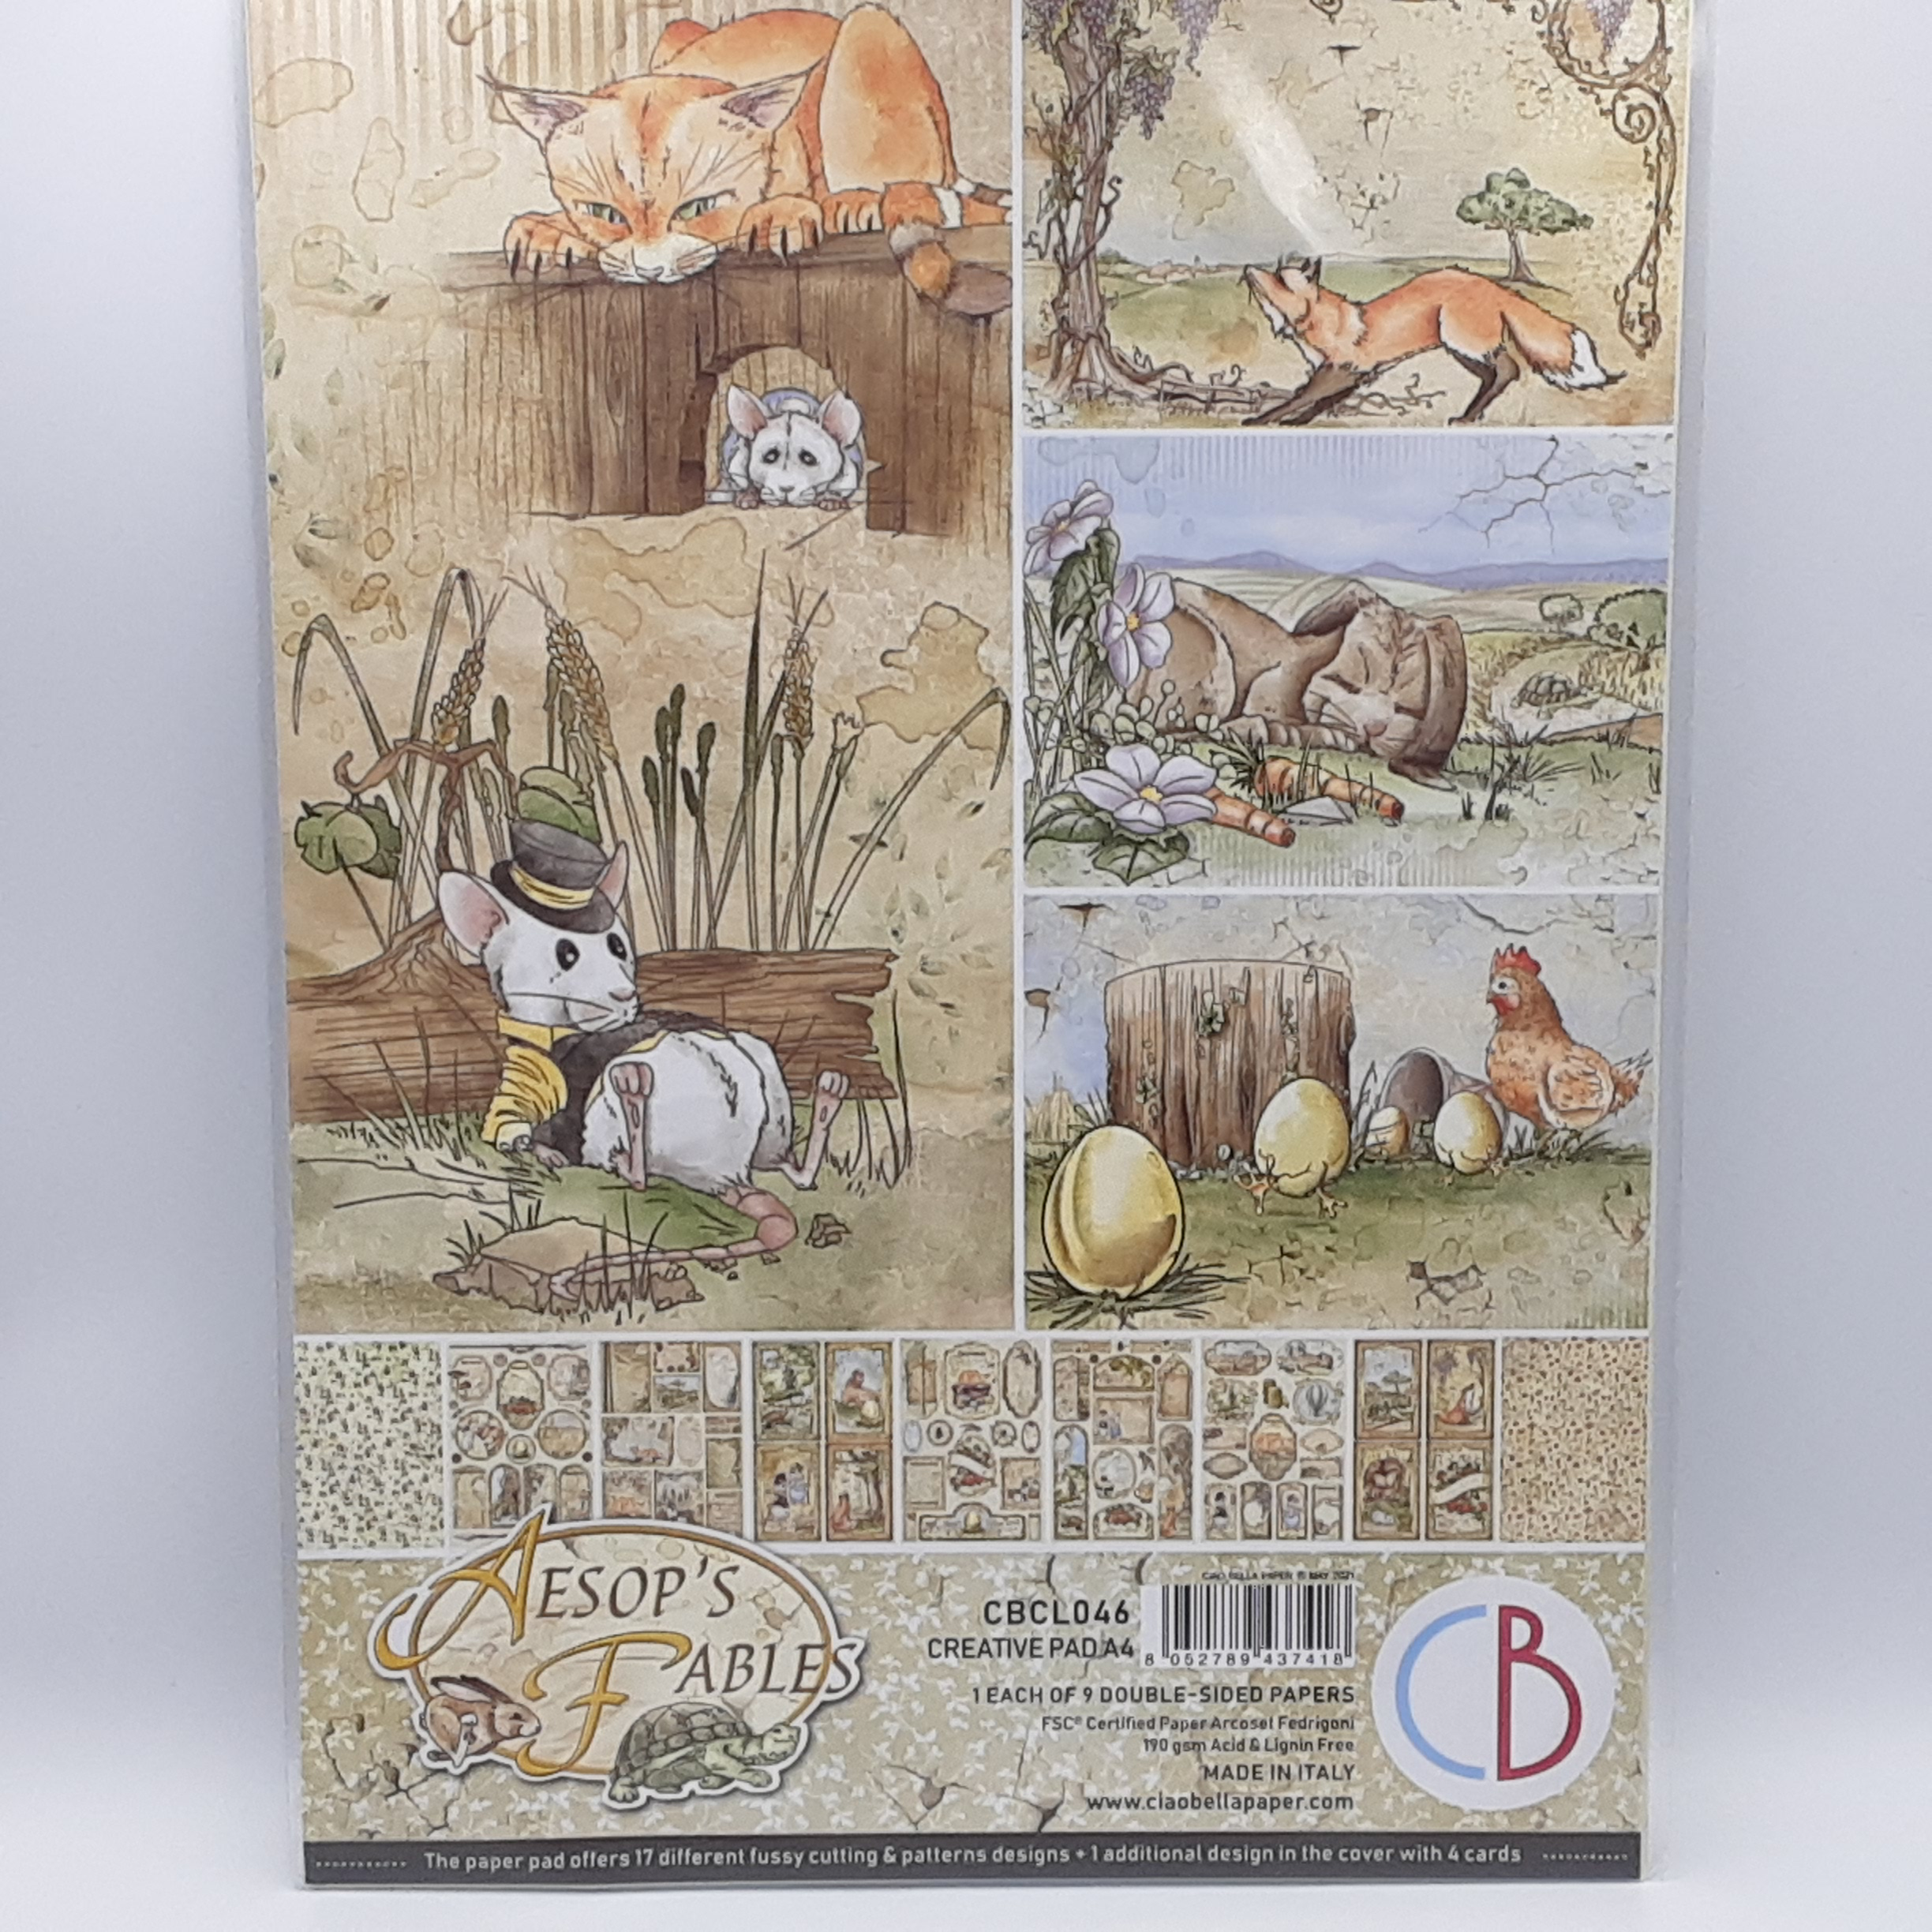 aesop's fables creative pad A4